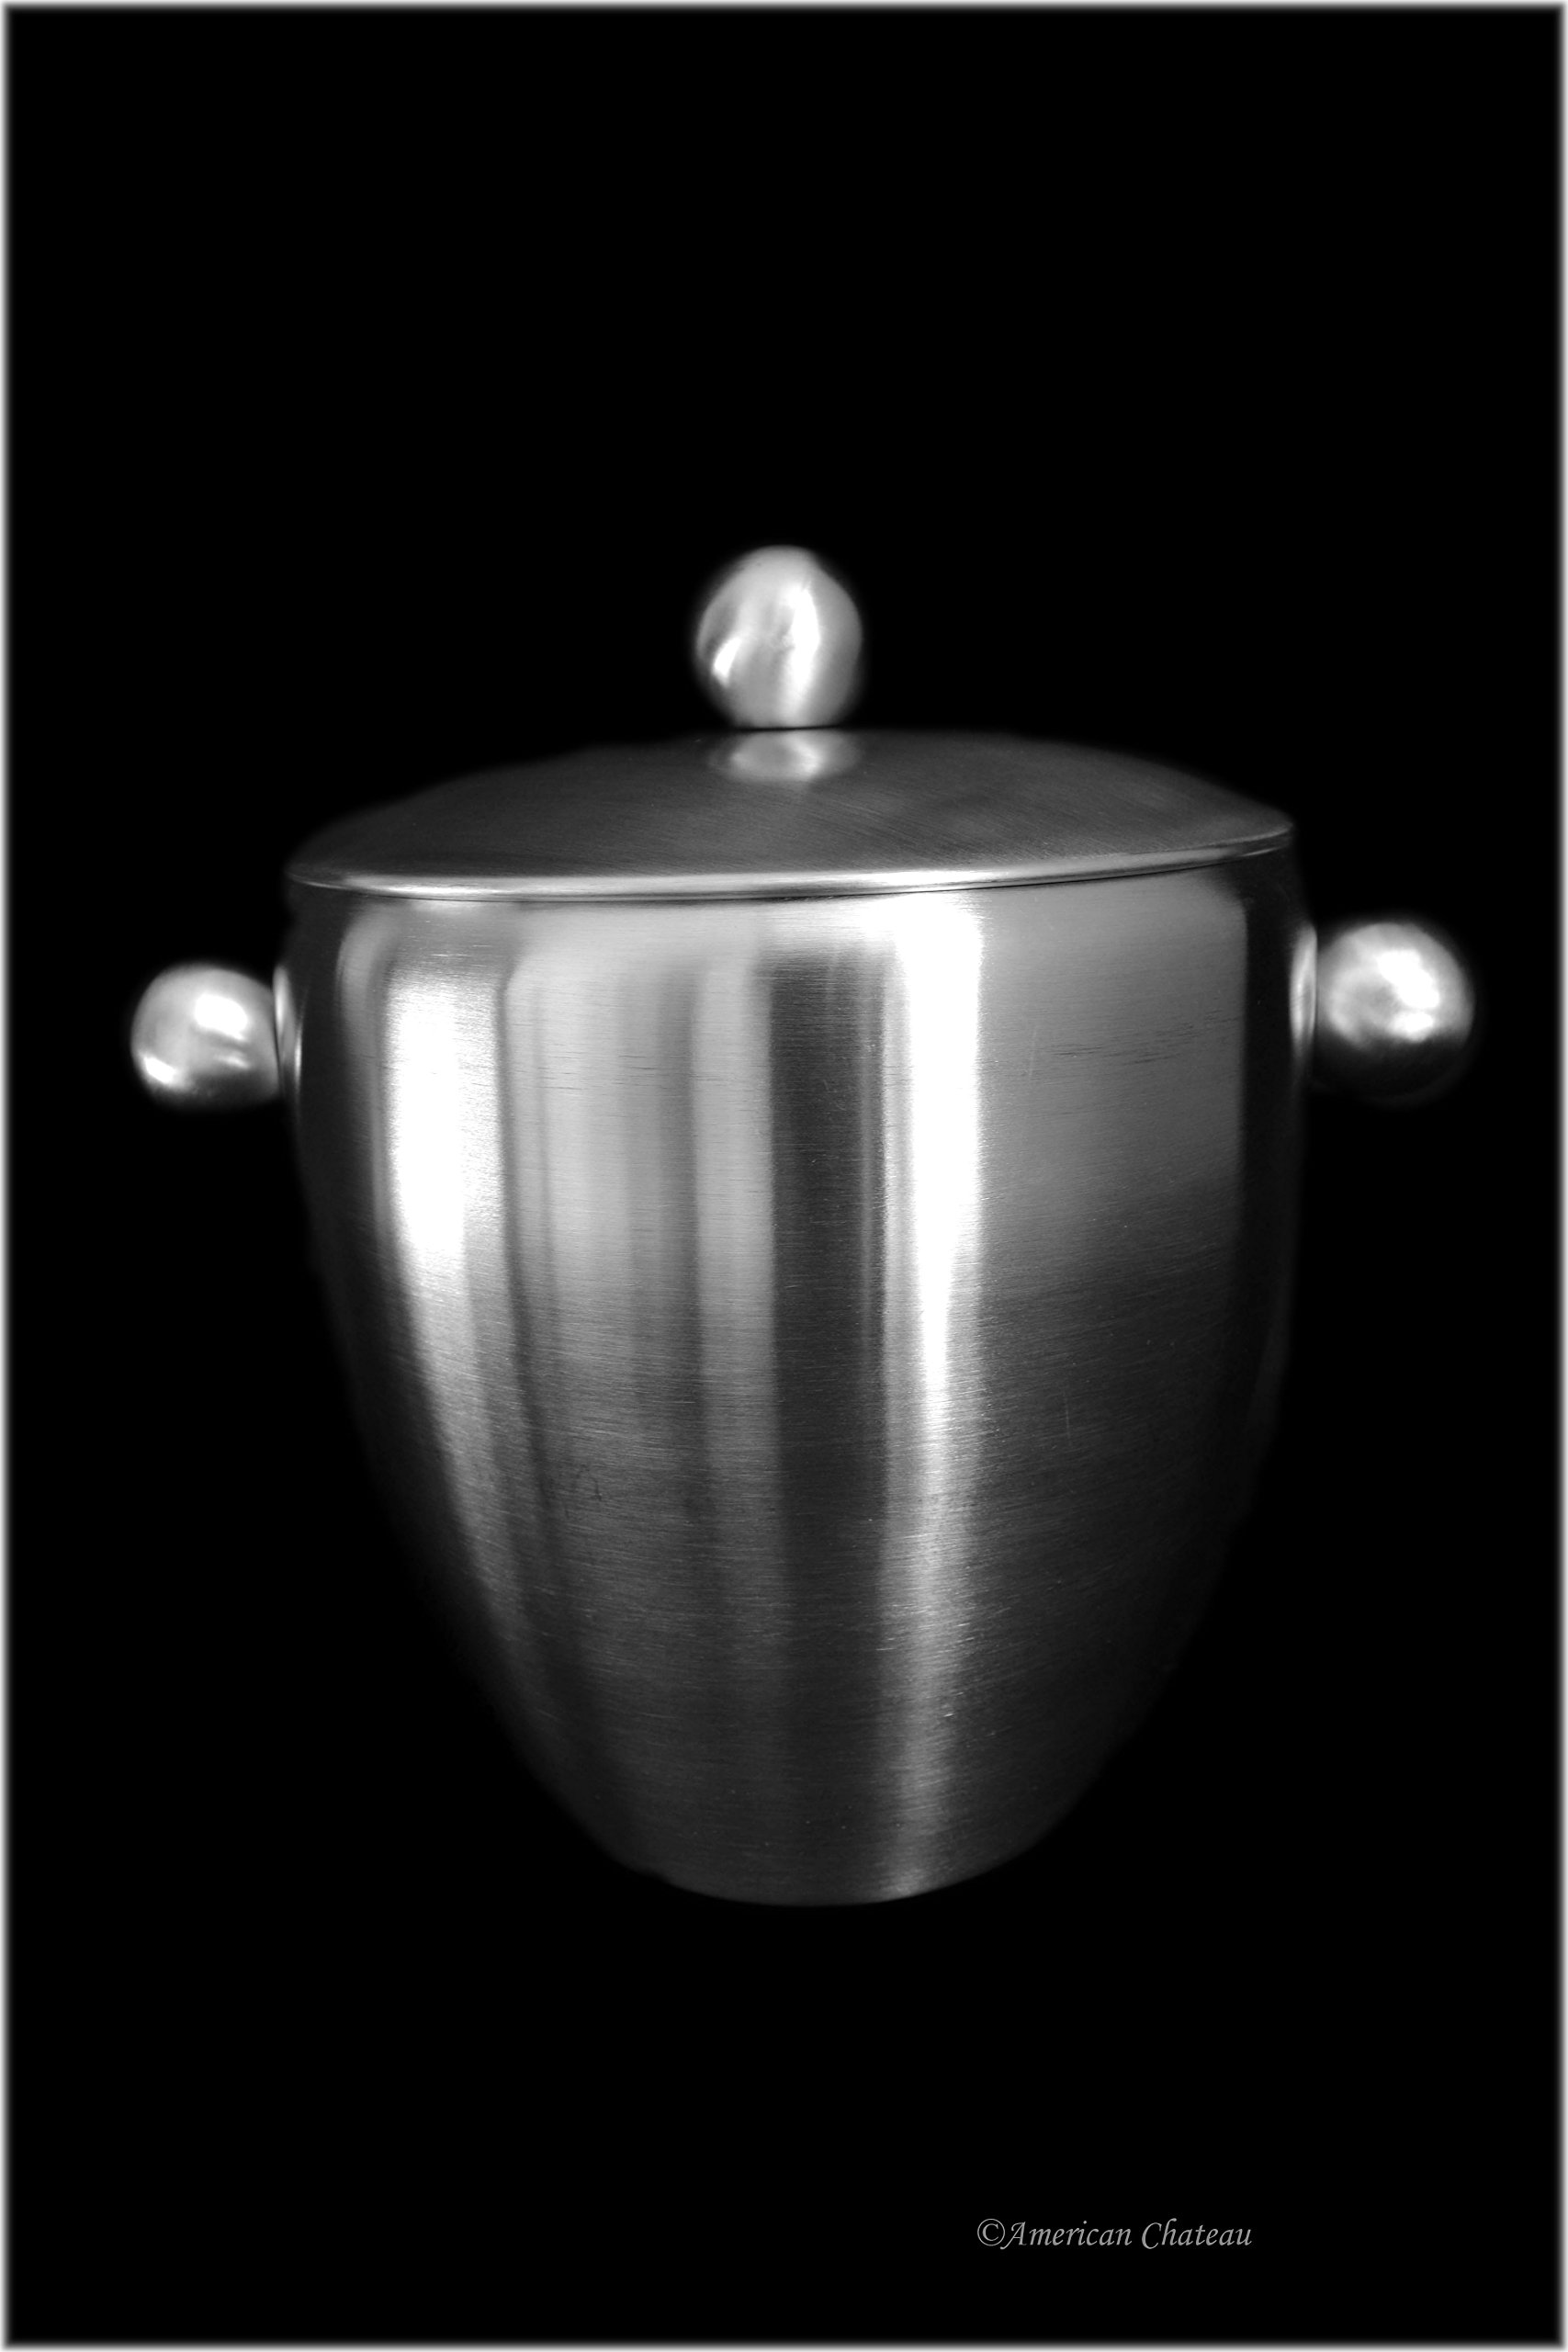 Hotel-Style Bar Satin Finish Metal Stainless Steel Ice Bucket With Lid